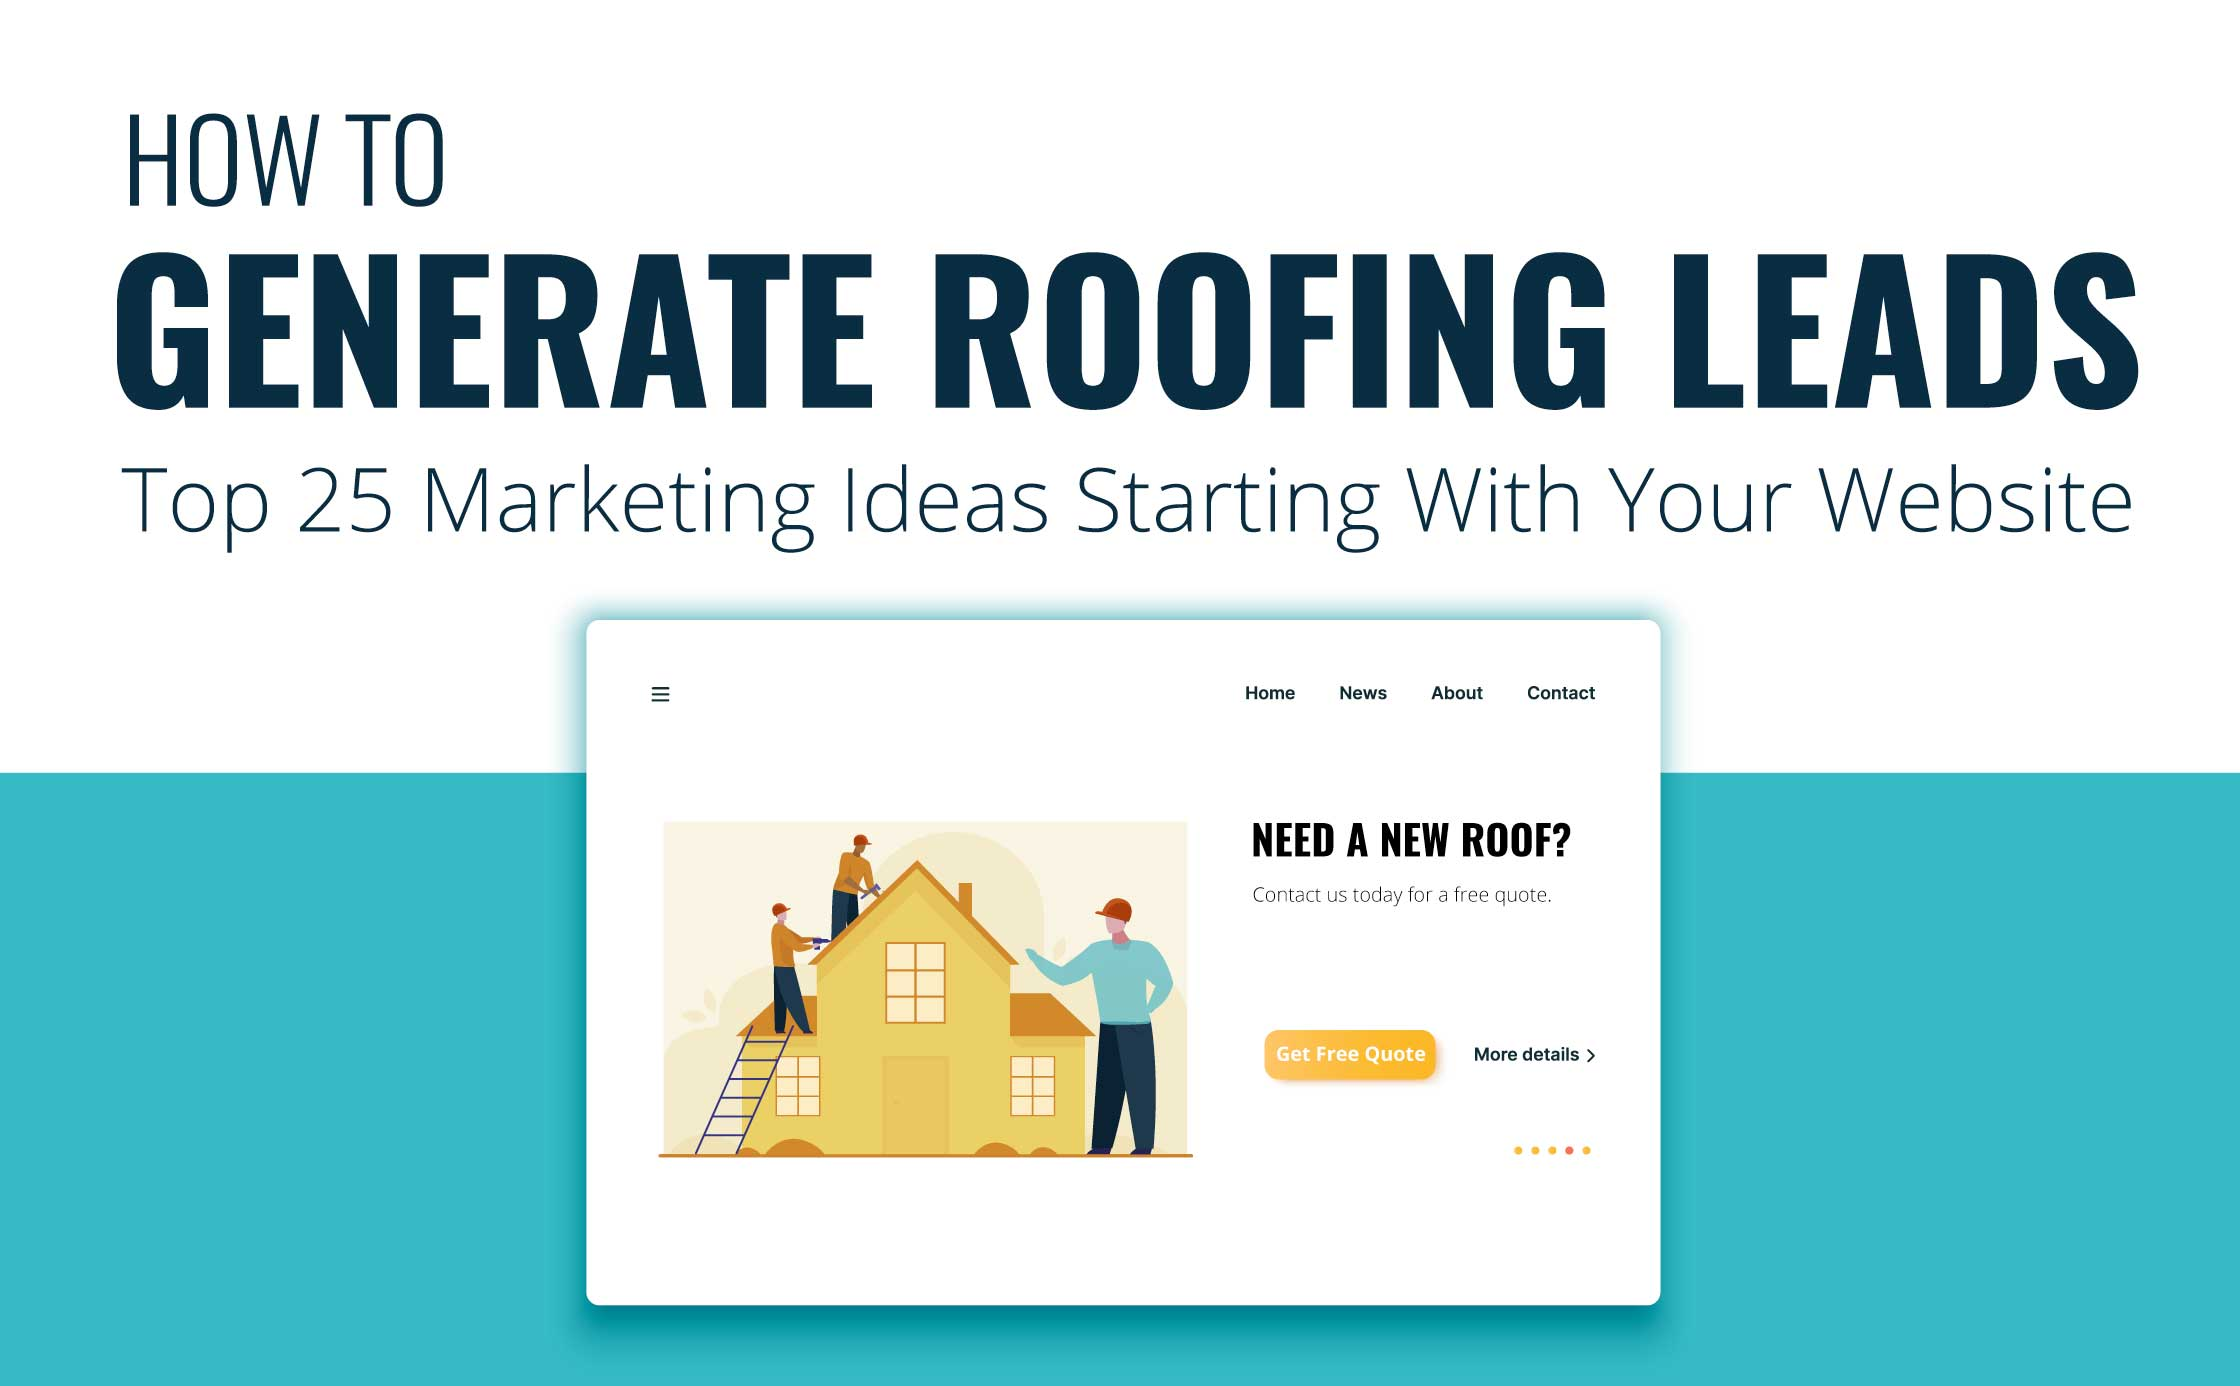 How to Generate Roofing Leads Top 25 Marketing Ideas Starting With Your Website